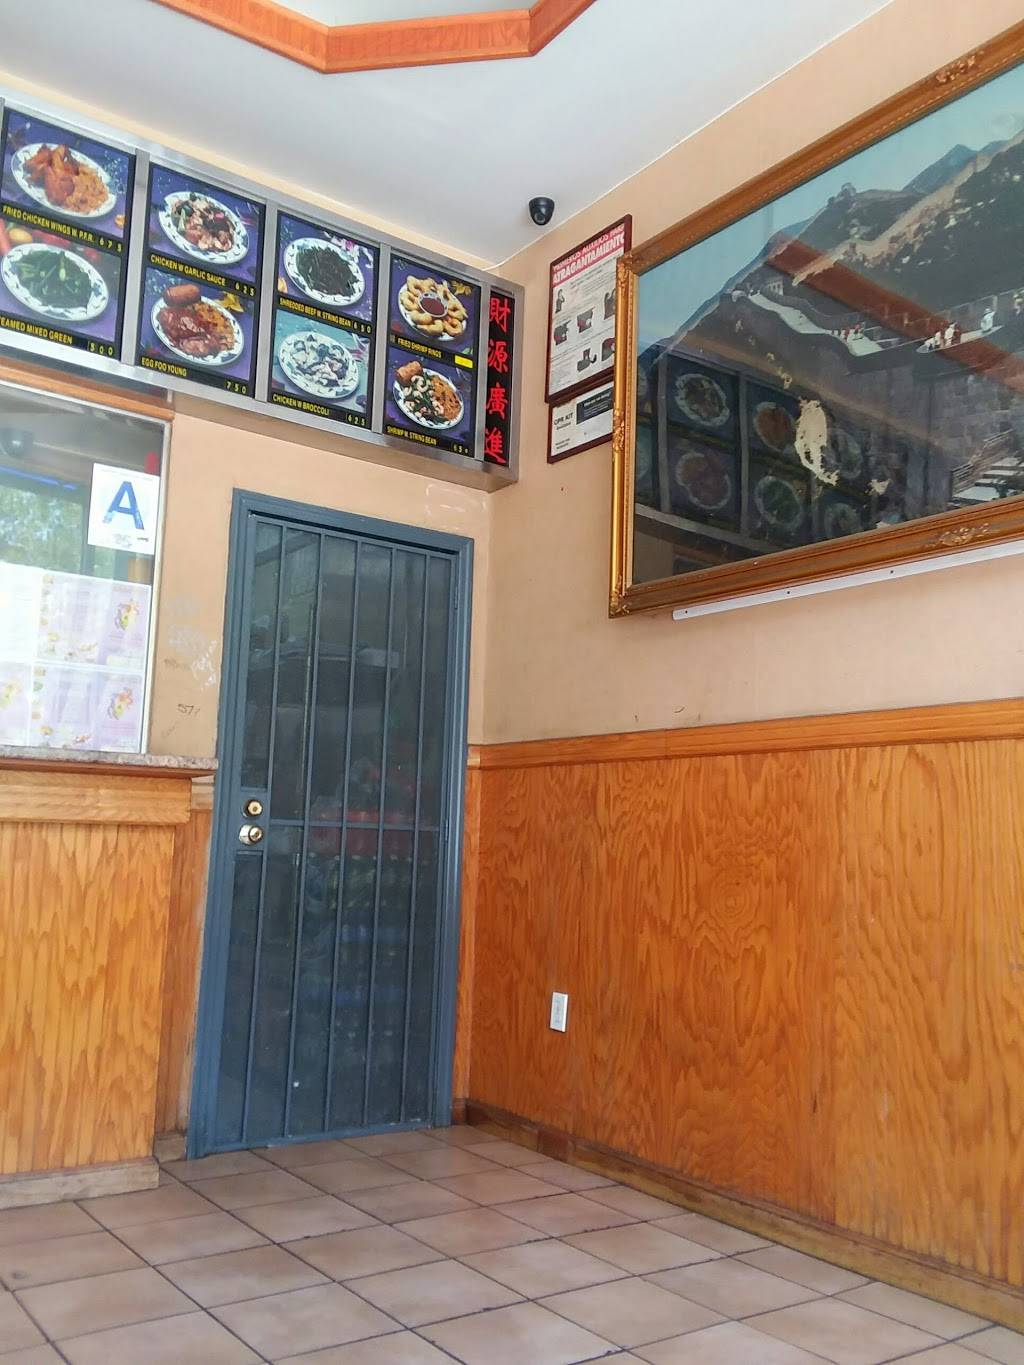 Golden City   restaurant   805 Sound View Ave, Bronx, NY 10473, USA   7188617899 OR +1 718-861-7899